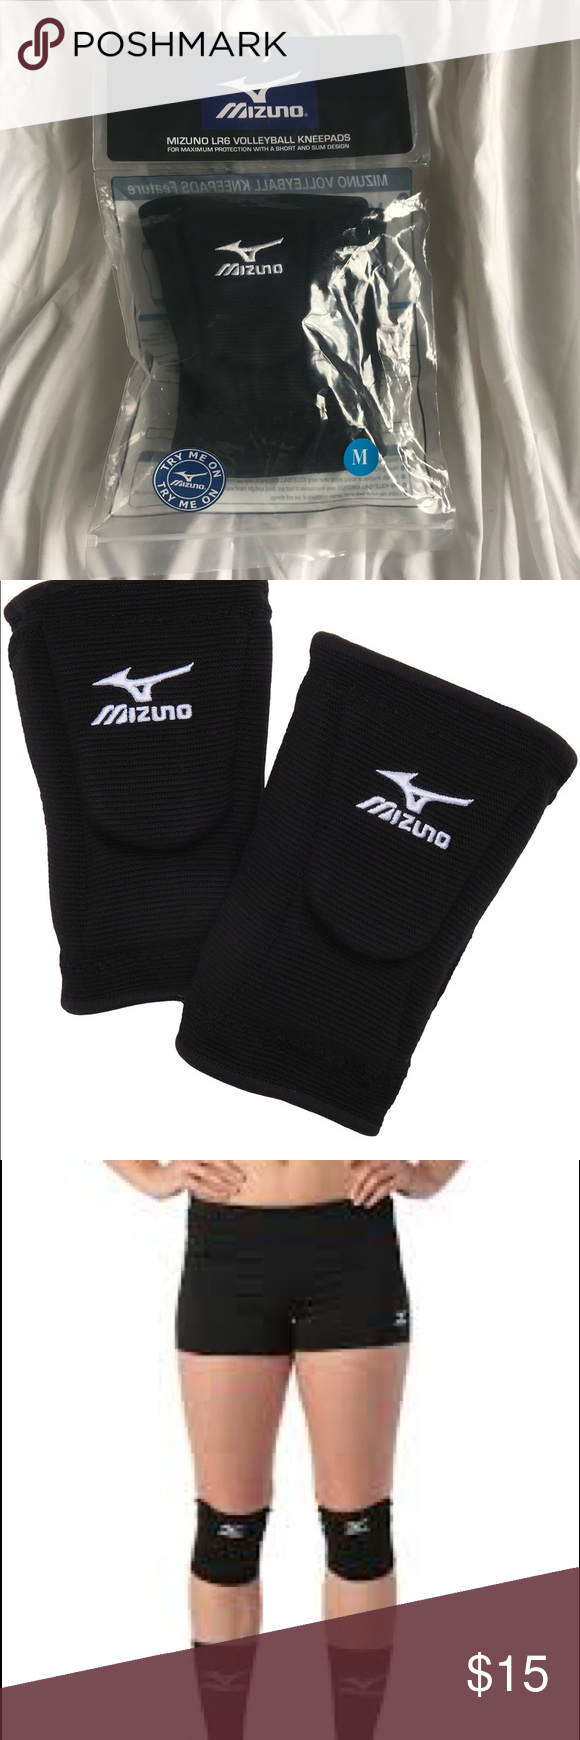 Nwot Mizuno Volleyball Knee Pads Volleyball Knee Pads Mizuno Volleyball Mizuno